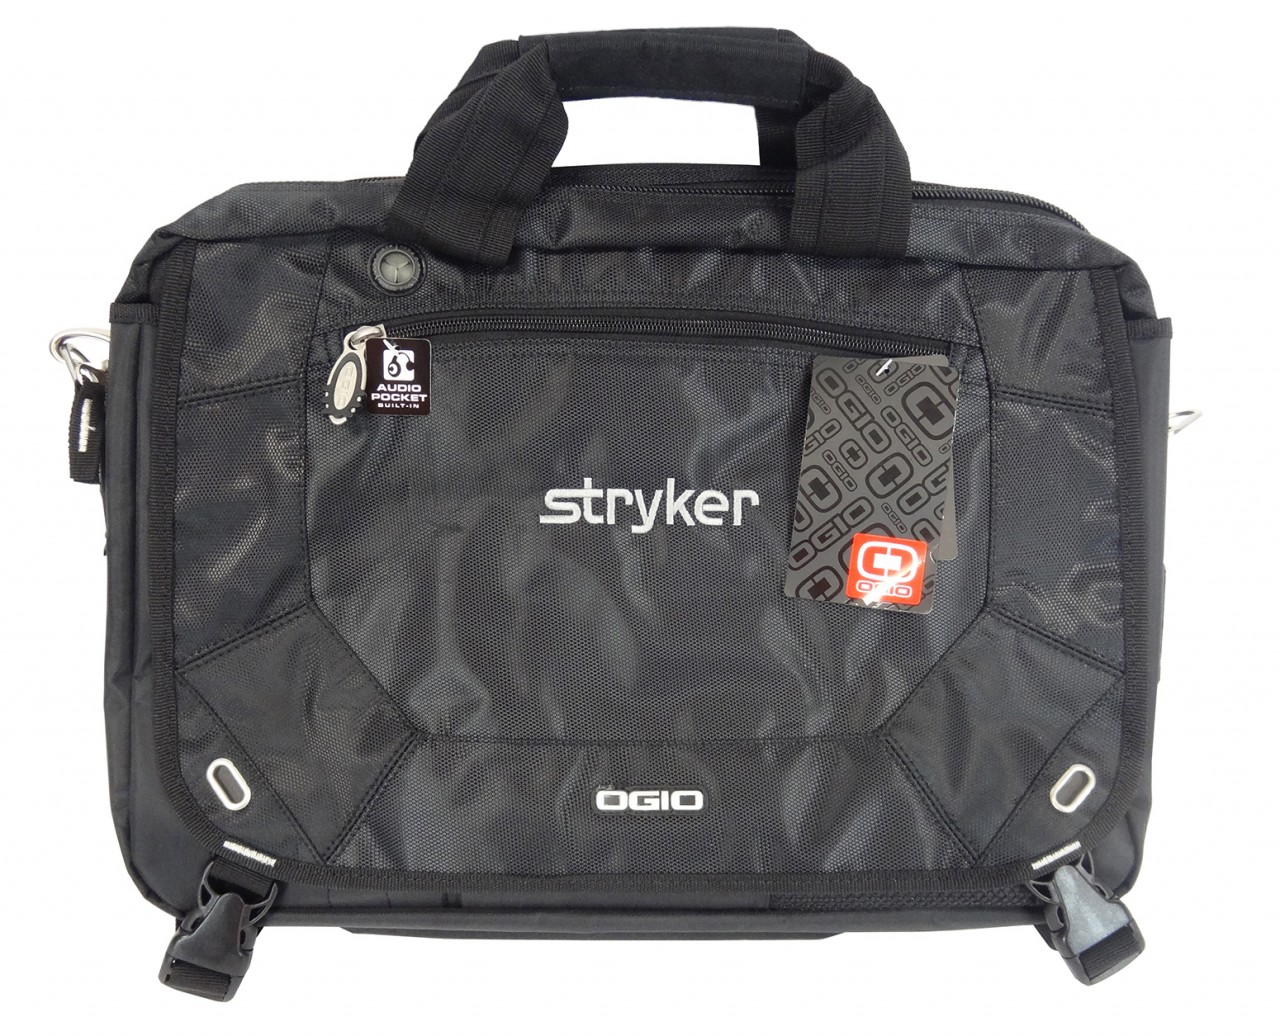 OGIO CORPORATE BUSINESS BAG - Stryker Company Store 5673c9c230